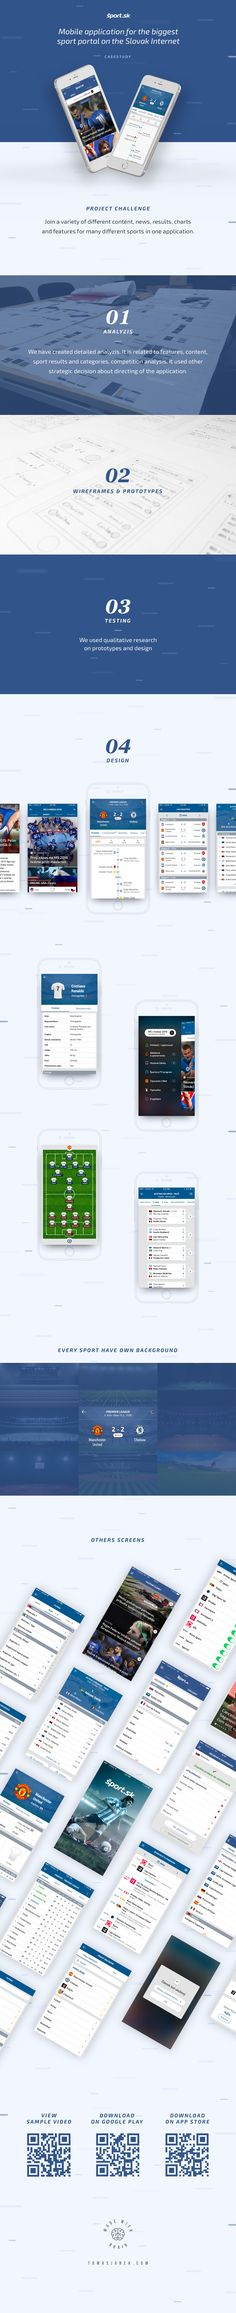 Mobile application for the biggest sport portal on the Slovak Internet. Designer: Tomas Janek